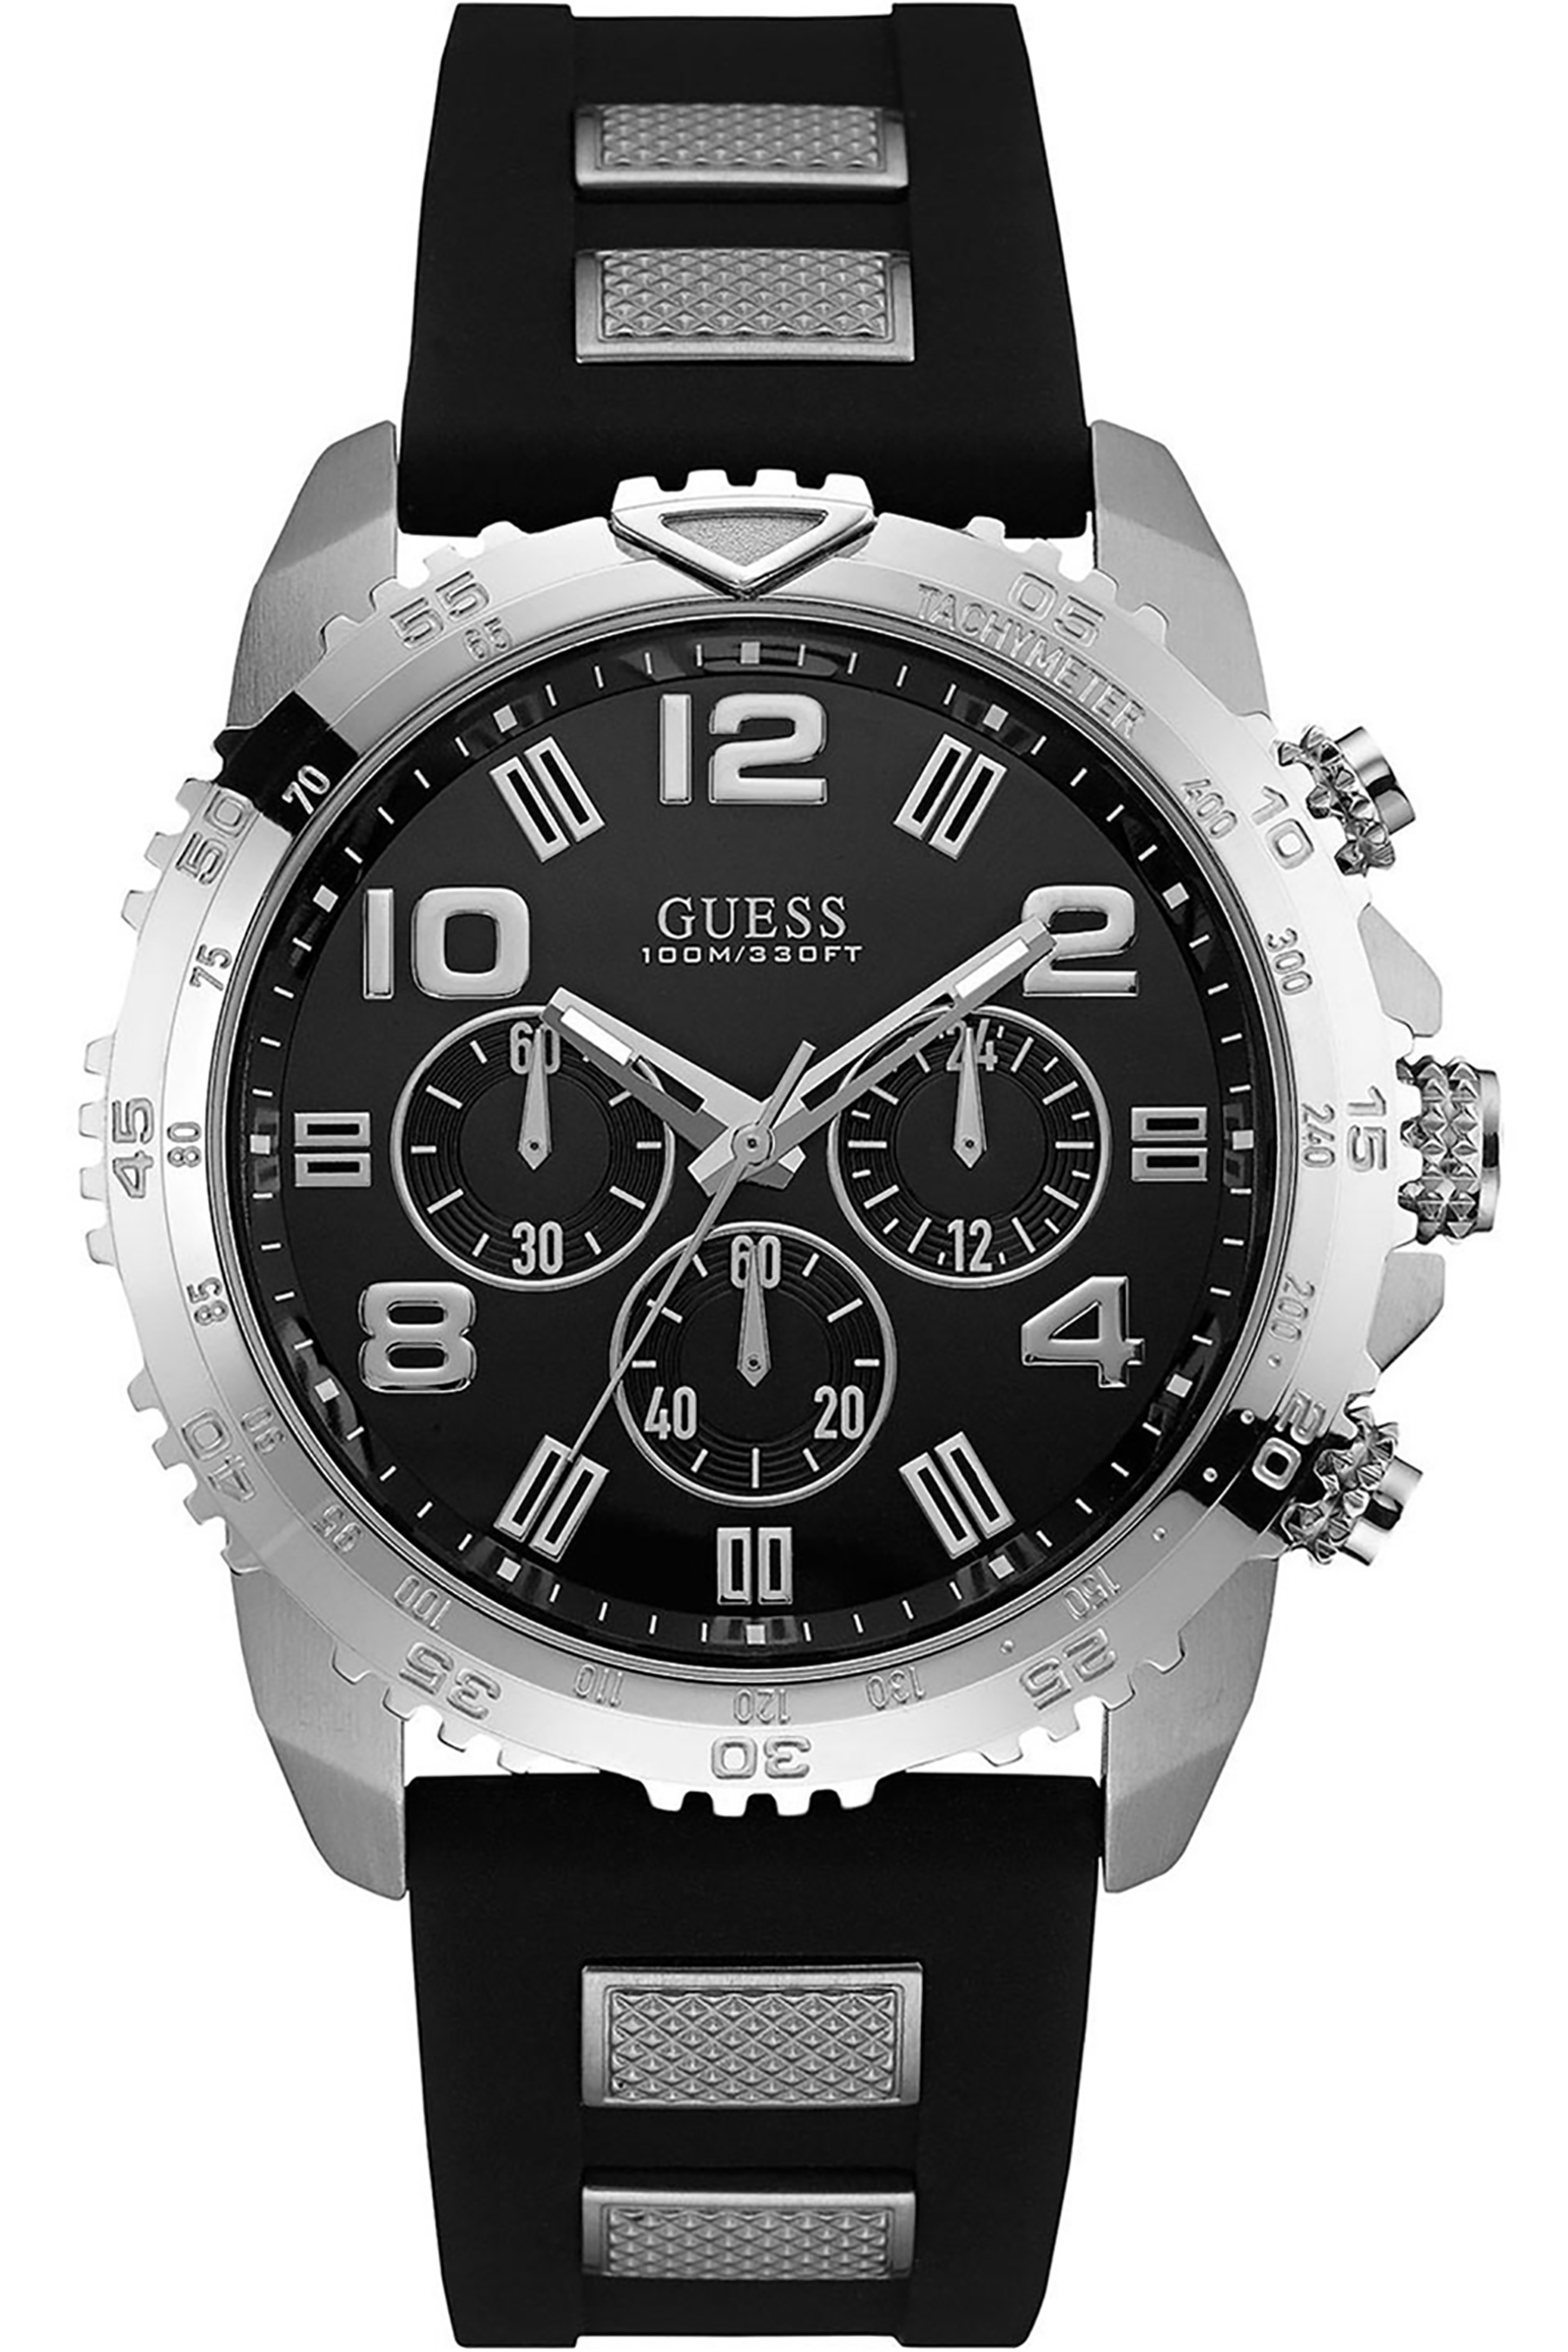 GUESS W0599G3,Men's Chronograph,Silver tone,black dial,stainless steel,black silicone strap,100m WR